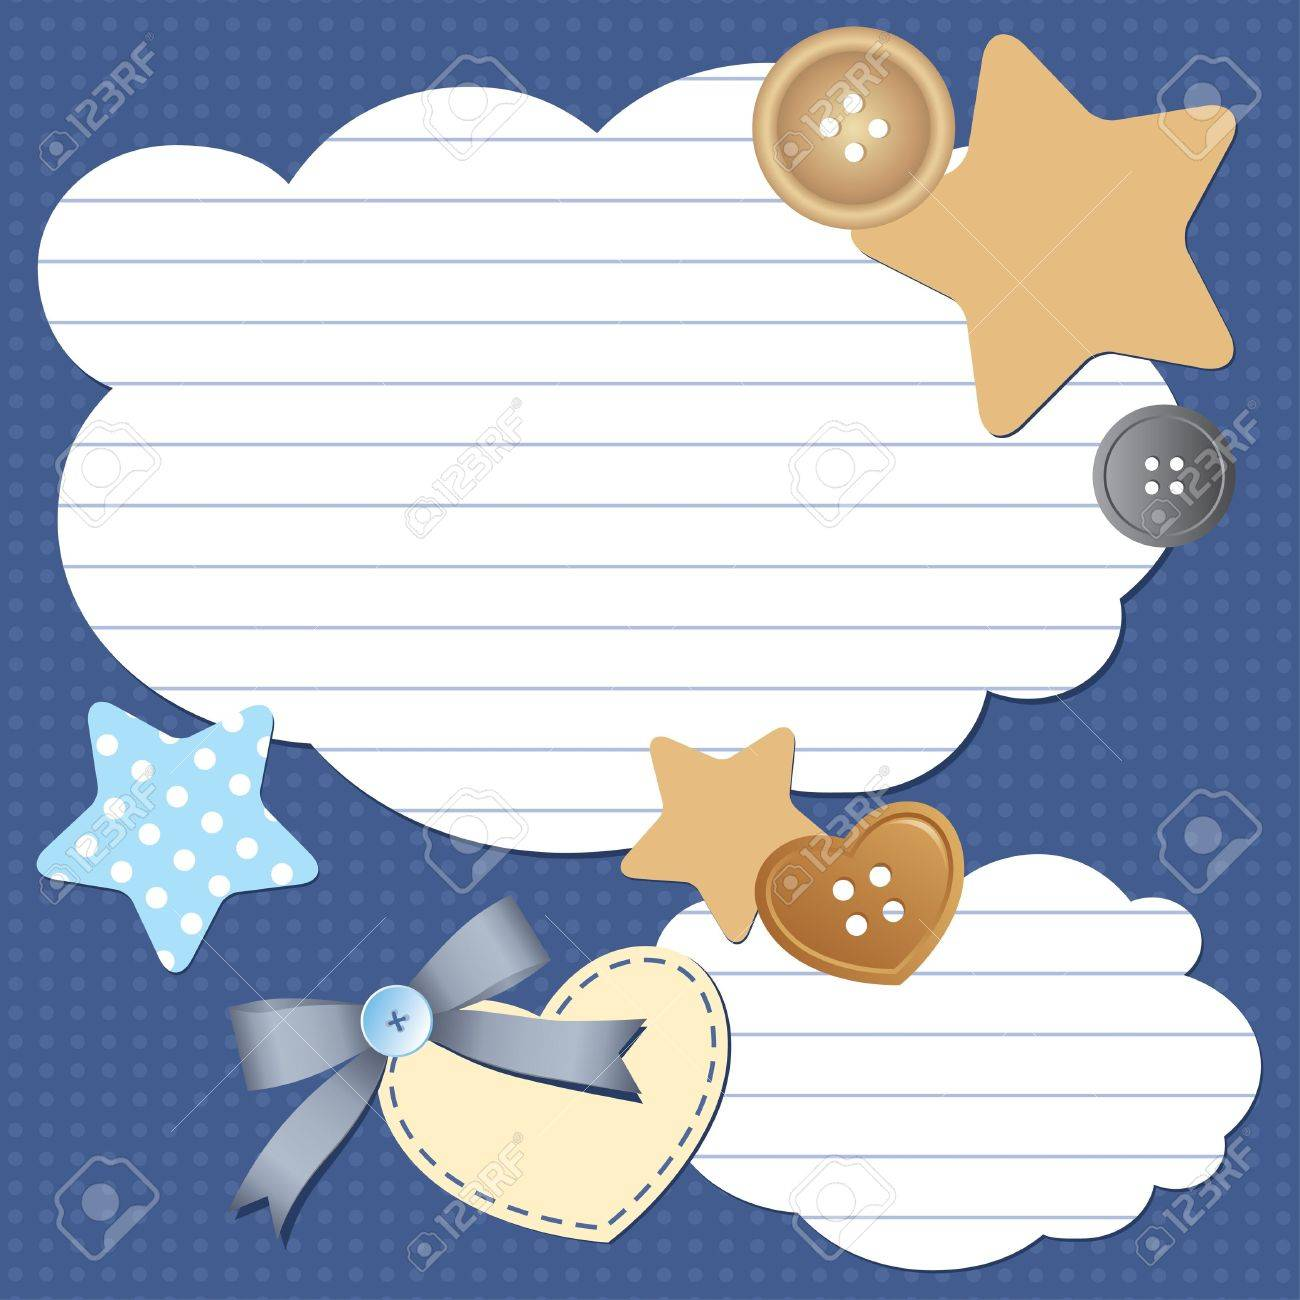 Scrapbook paper clouds - Vector Frame With Paper Clouds And Scrapbook Elements